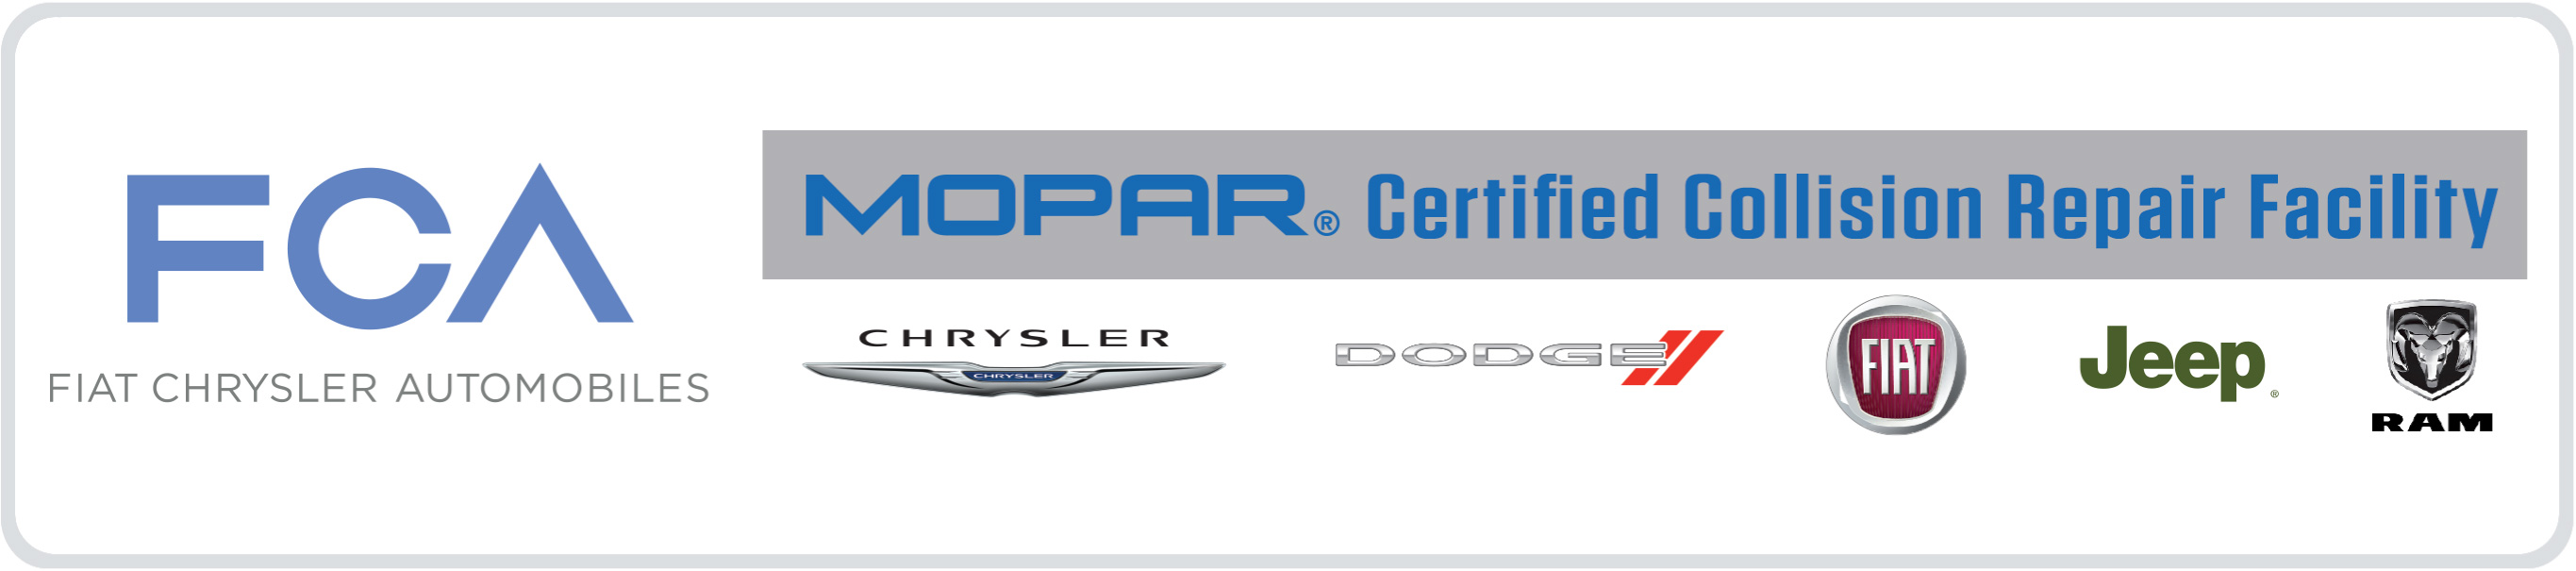 FCA MOPAR Certified Collision Repair Facility